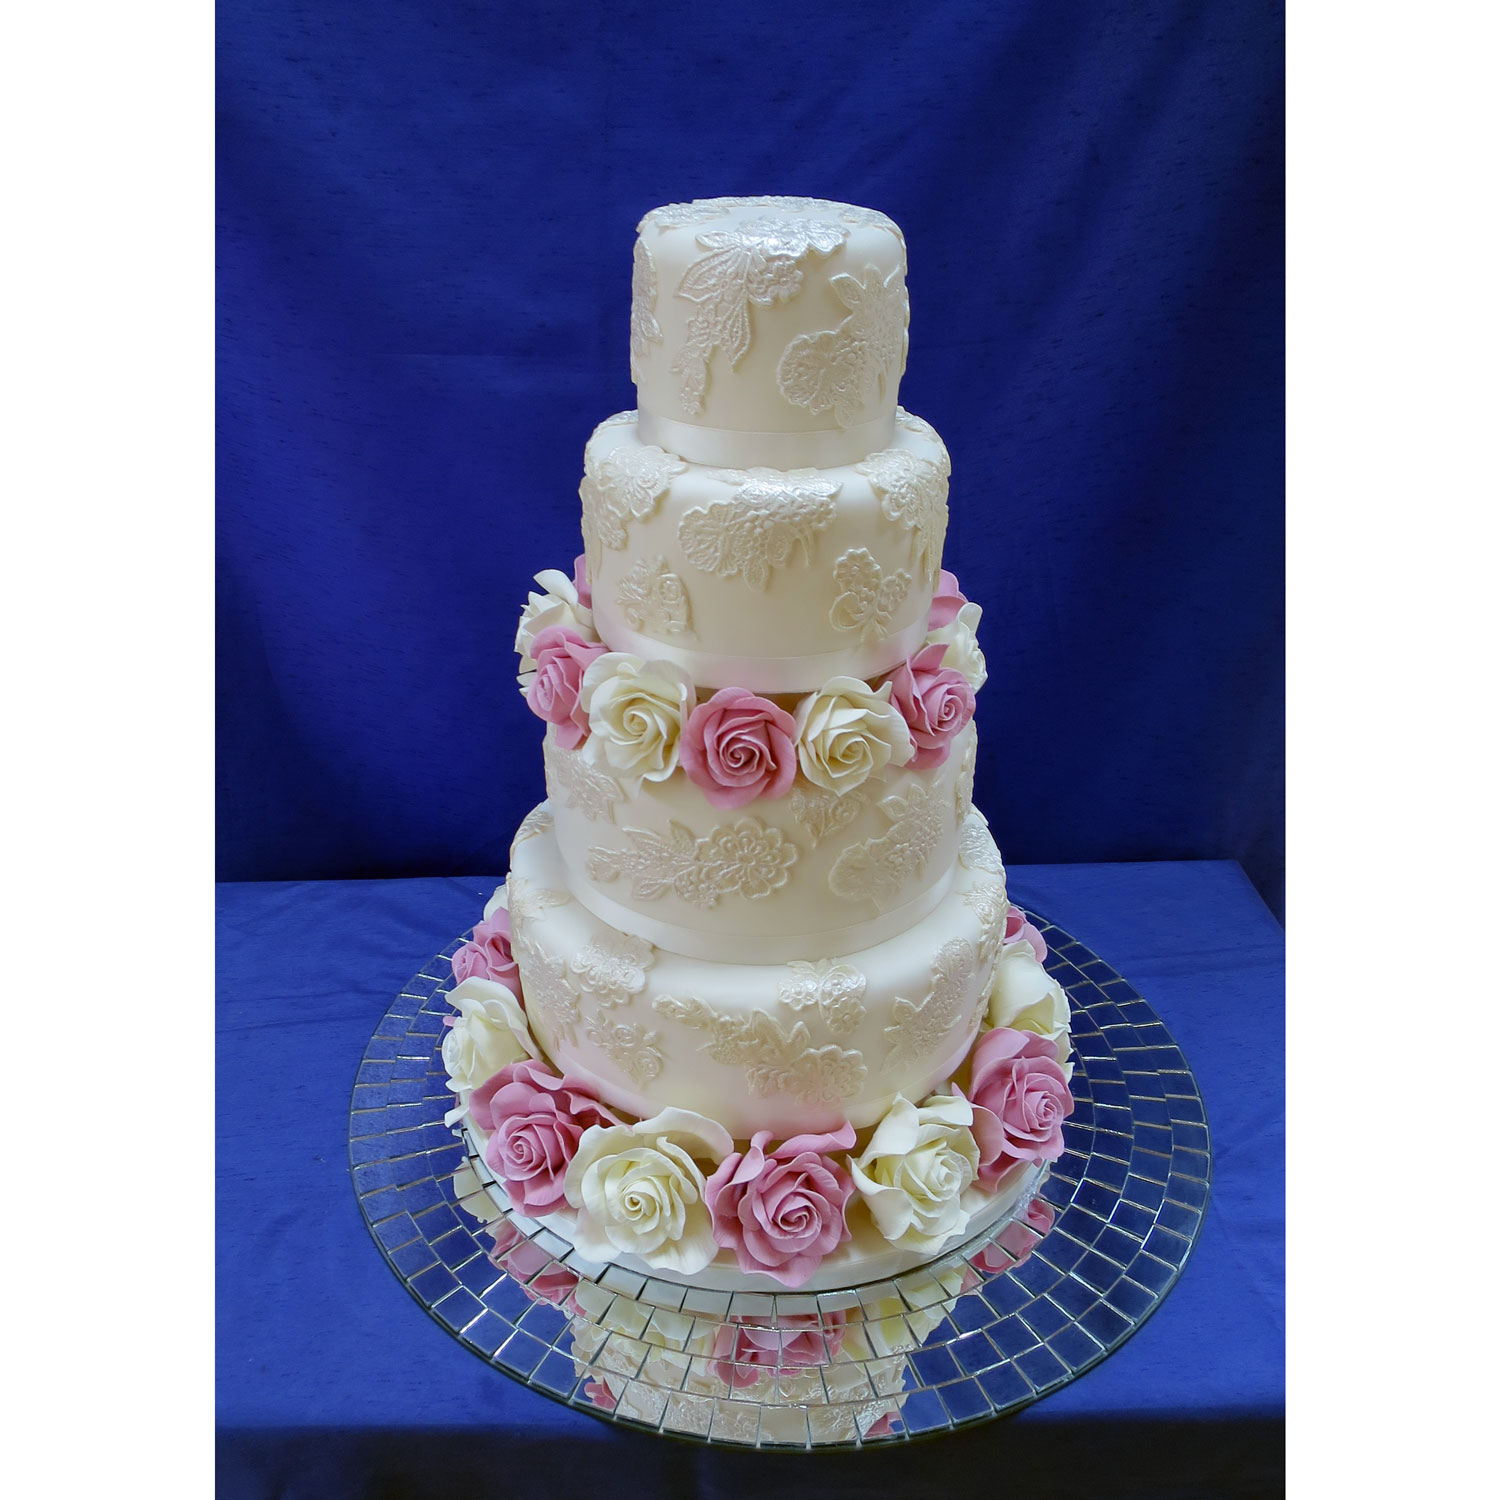 Lace Covered Wedding Cake with Sugar Roses